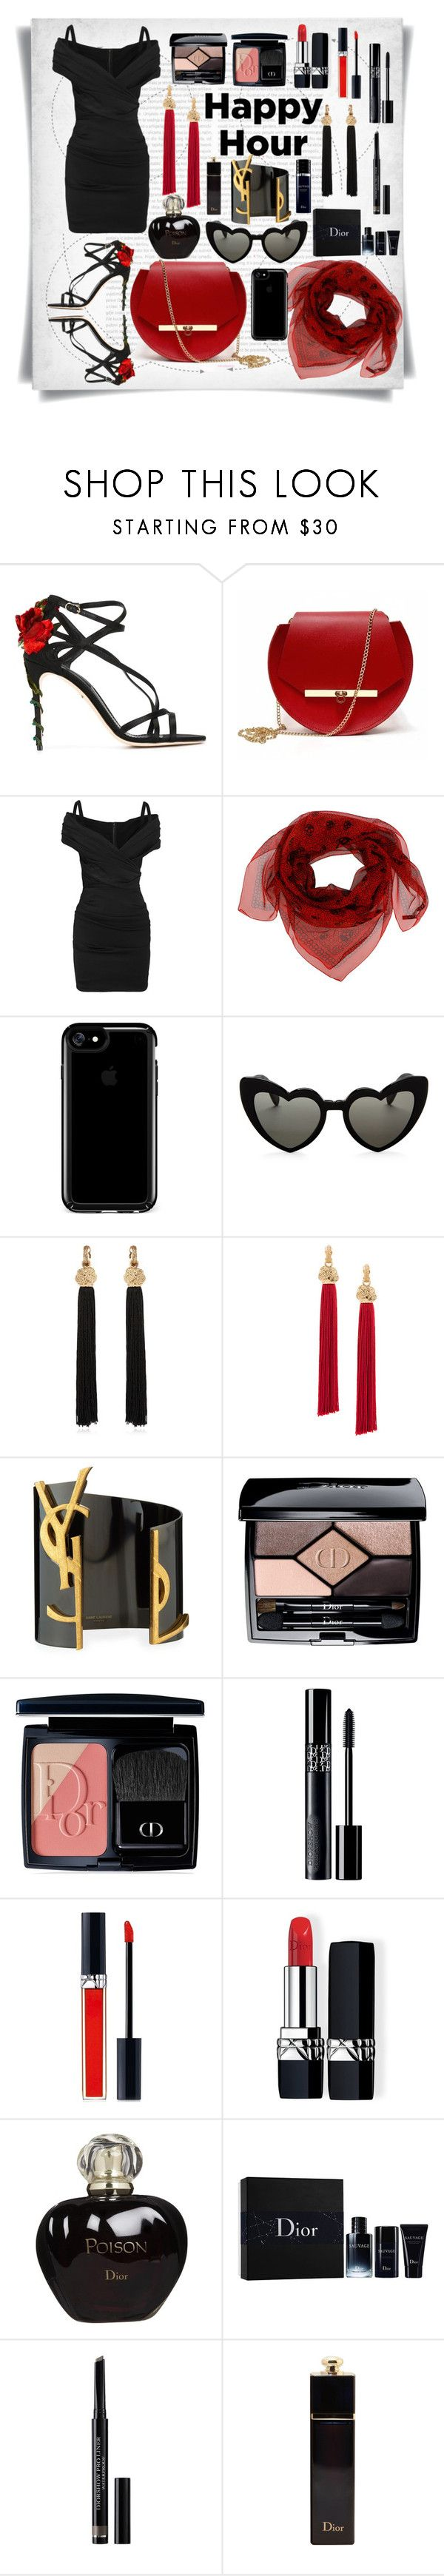 """Happy Hour:Dolce & Gabanna black dress"" by imbeauty ❤ liked on Polyvore featuring Oris, Dolce&Gabbana, Angela Valentine Handbags, Alexander McQueen, Speck, Yves Saint Laurent, Christian Dior and happy"